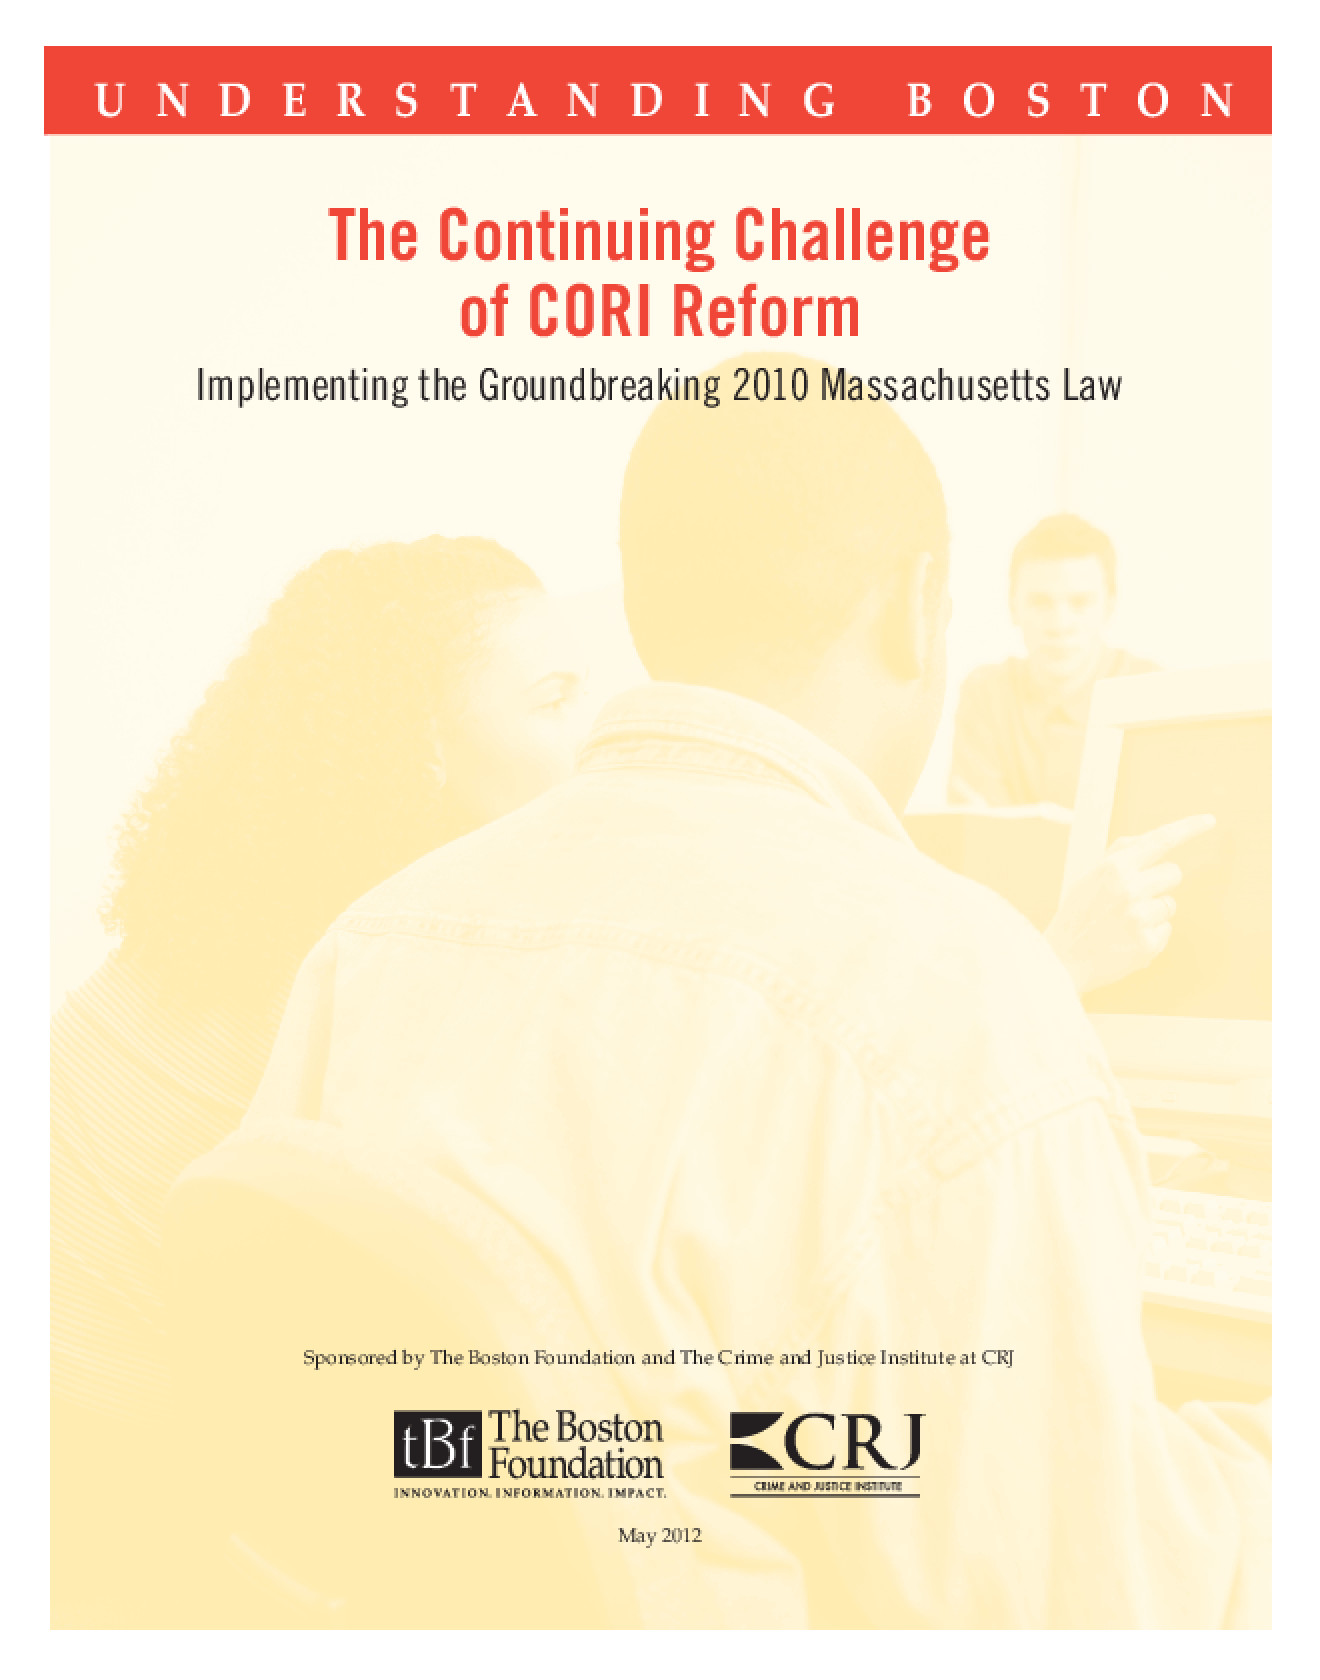 The Continuing Challenge of CORI Reform: Implementing the Groundbreaking 2010 Massachusetts Law